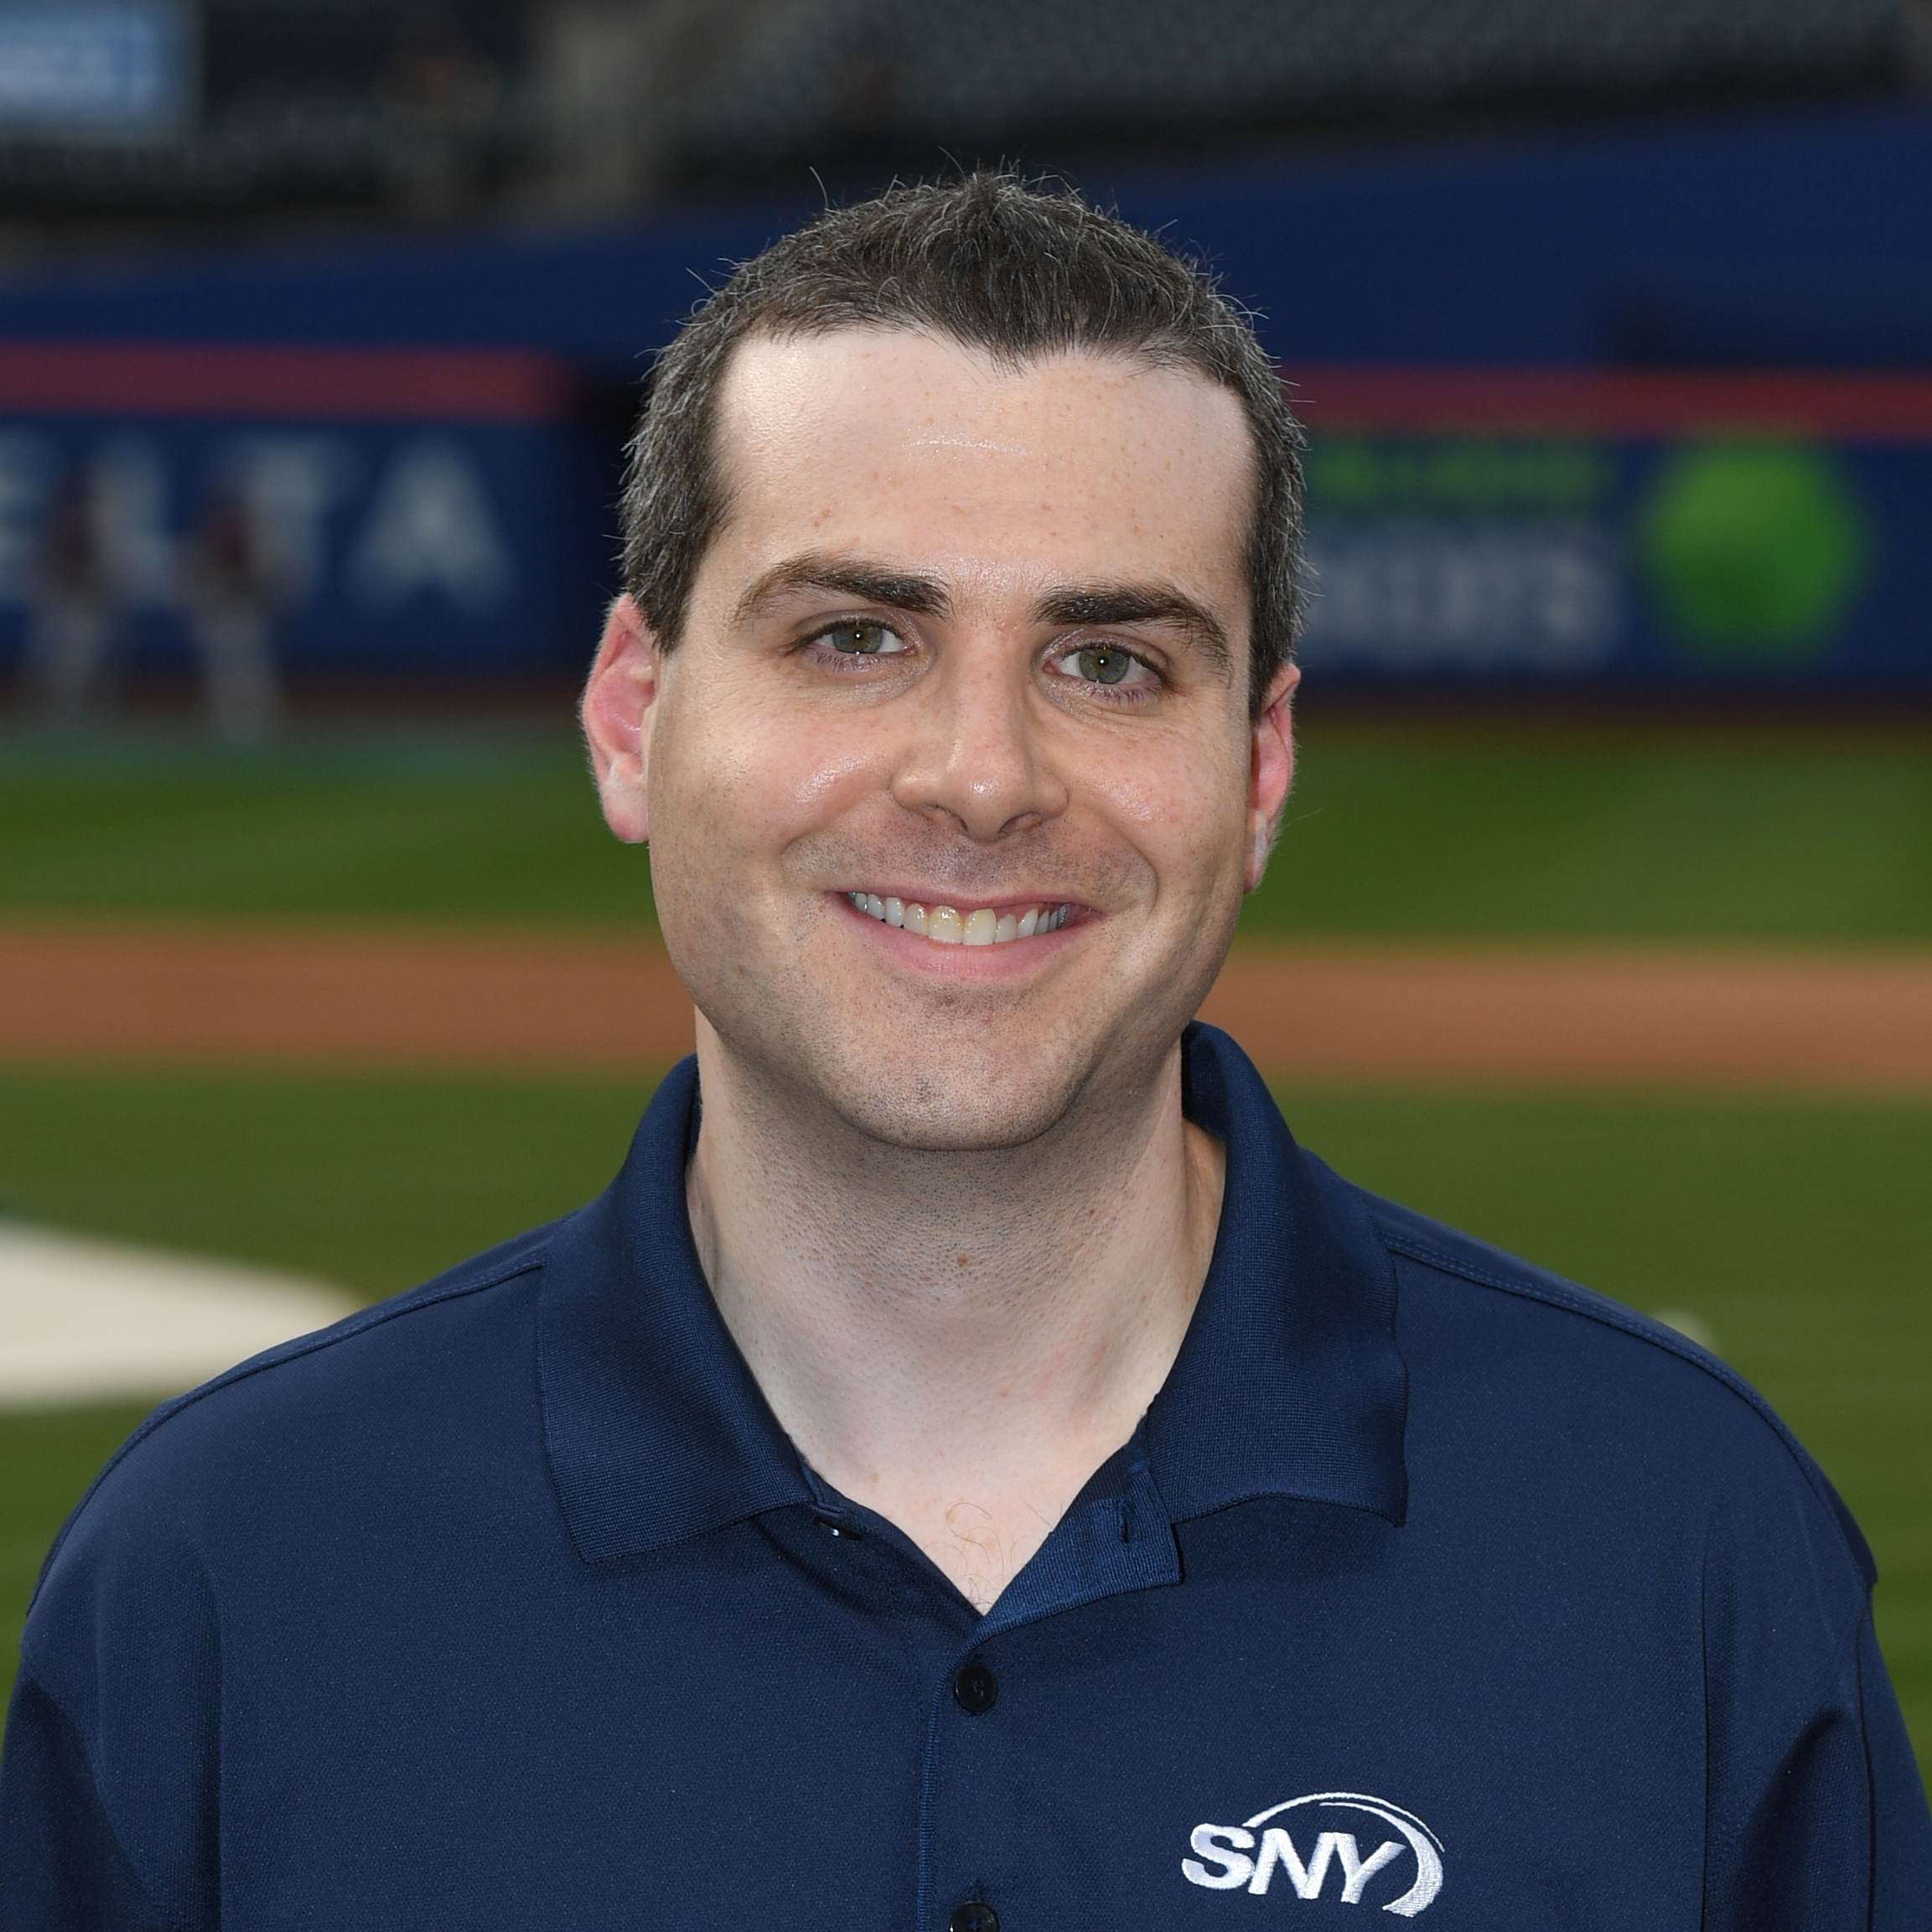 "Steve Gelbs is SNY's Mets Field Reporter. Gelbs joined Gary Cohen, Keith Hernandez and Ron Darling in 2015 as member of the network's Emmy Award winning Mets broadcast team. He joined SNY in 2013 as an anchor and sport reporter contributing to the network's sports and entertainment shows. He is also a regular contributor to SNY's Mets pre-and post-game shows, Baseball Night in New York and Mets Hot Stove.  Prior to joining SNY, Steve spent a year and a half at MSG Network, as well as four years at MSG Varsity in New York. On the TV side at MSG Network, Steve served as a host of the ""MSG 150"" during Knicks and Rangers telecasts, as well as a host for the network's College Basketball coverage. On MSG Radio Network, Steve handled the pre-game, post-game and intermission reports for Rangers Broadcasts - which aired on ESPN Radio in New York. In his four years at MSG Varsity, Steve was utilized in a number of different capacities. He was an anchor, host, feature & sideline reporter, play-by-play announcer and color commentator. While at MSG Varsity, Steve was nominated for 4 New York Emmys, including ""Sports Anchor of the Year"" in 2012.  Steve graduated Syracuse University's Newhouse School of Public Communications in 2009, with a bachelor's degree in Broadcast Journalism. He won the Syracuse Press Club Award for ""Best Radio Sports Feature,"" in 2009."